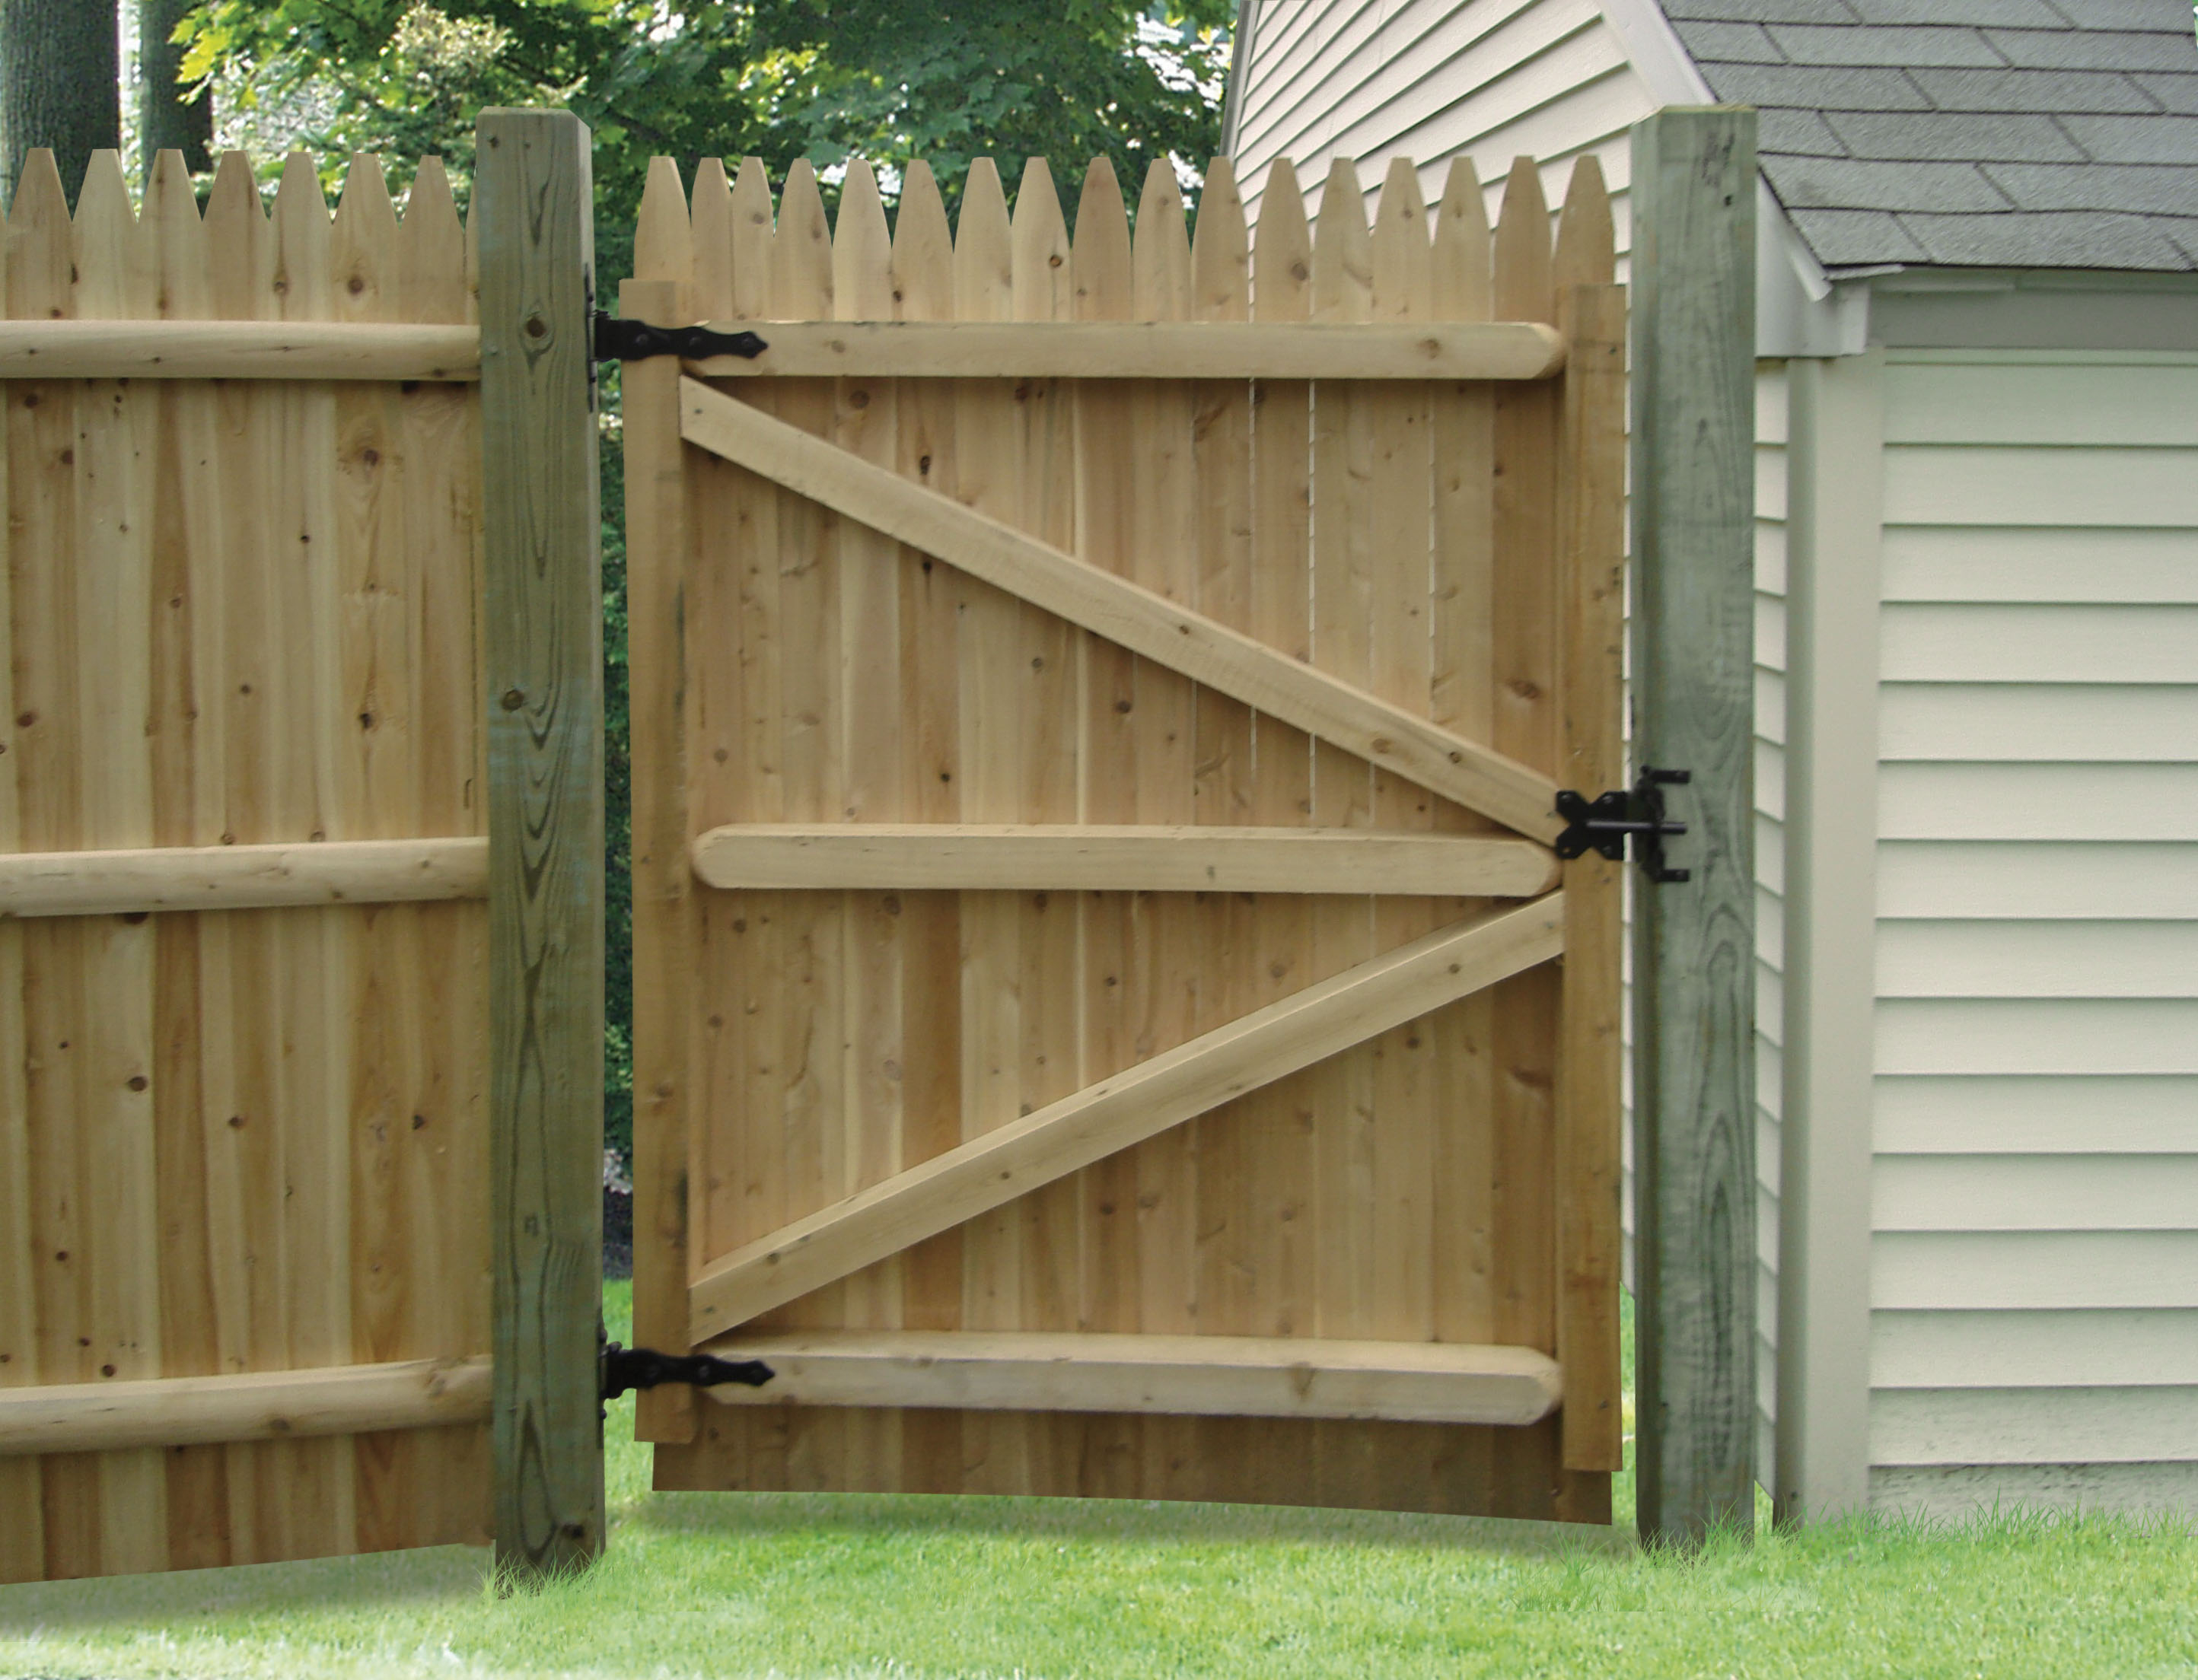 Wood Fence Gate Ideas Outdoor Decorations Wood Fence Gate Detail intended for Backyard Fence Gate